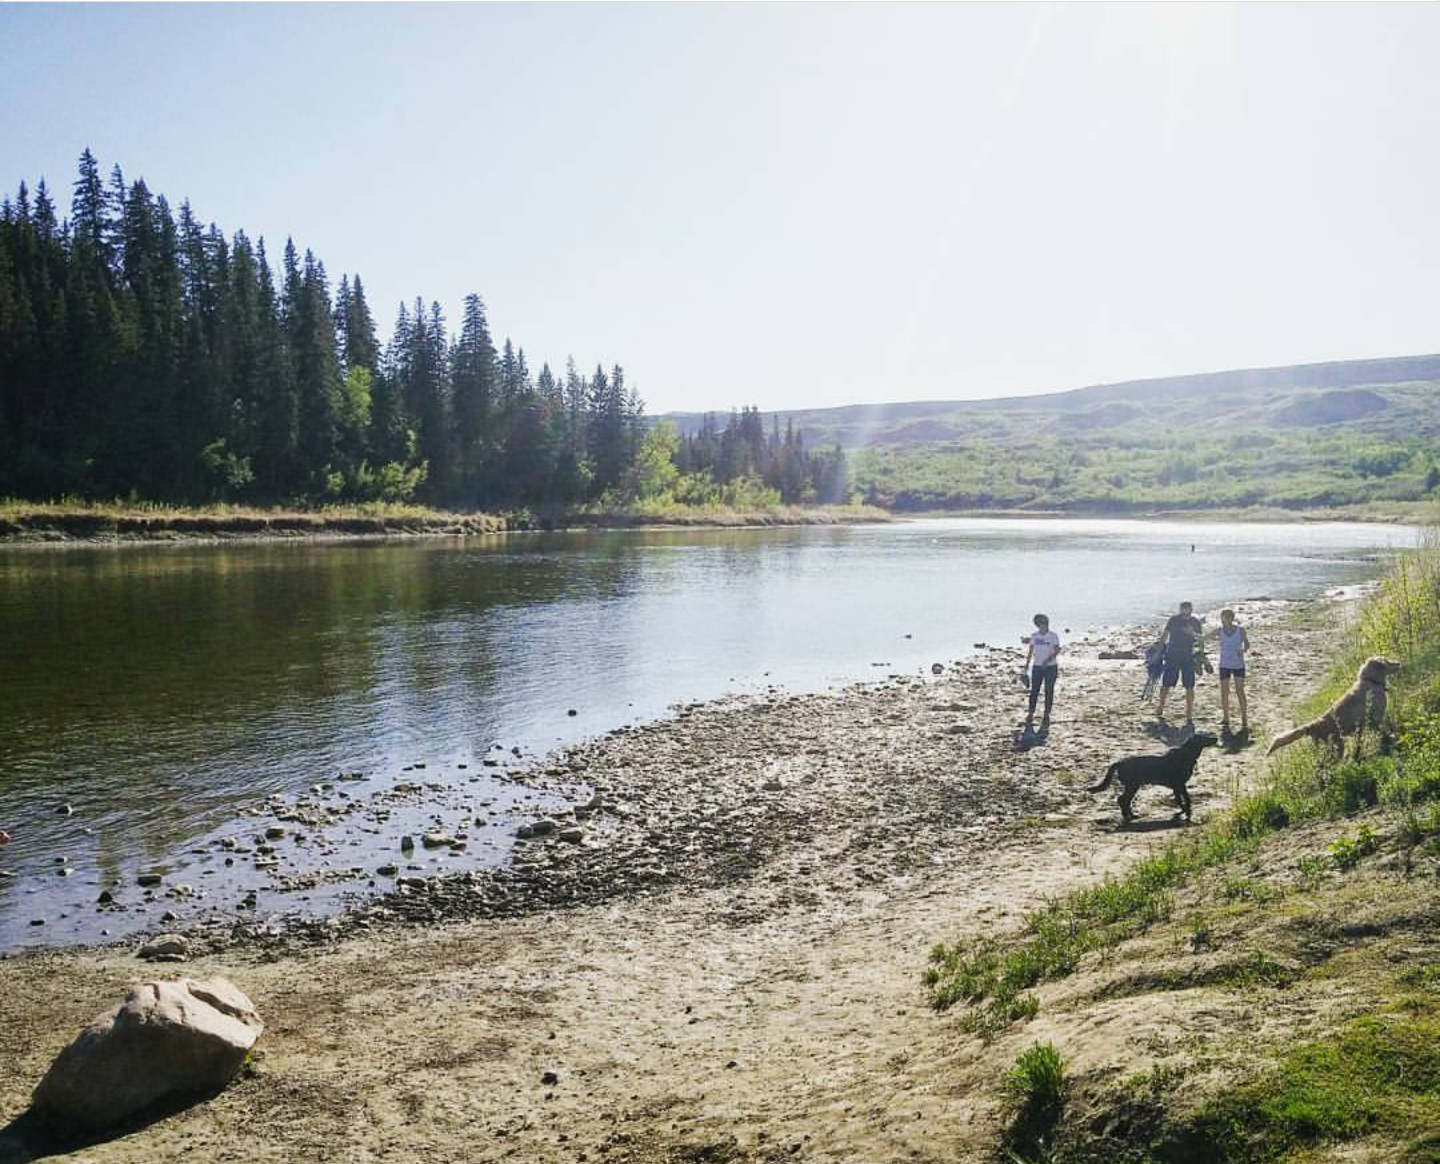 The Red Deer River at Buffalo Jump is a popular hangout for prairie kids. The fishing is good, swimming is warm, the sun is always shining in the summer, and it's the closest thing to an ocean that they have!